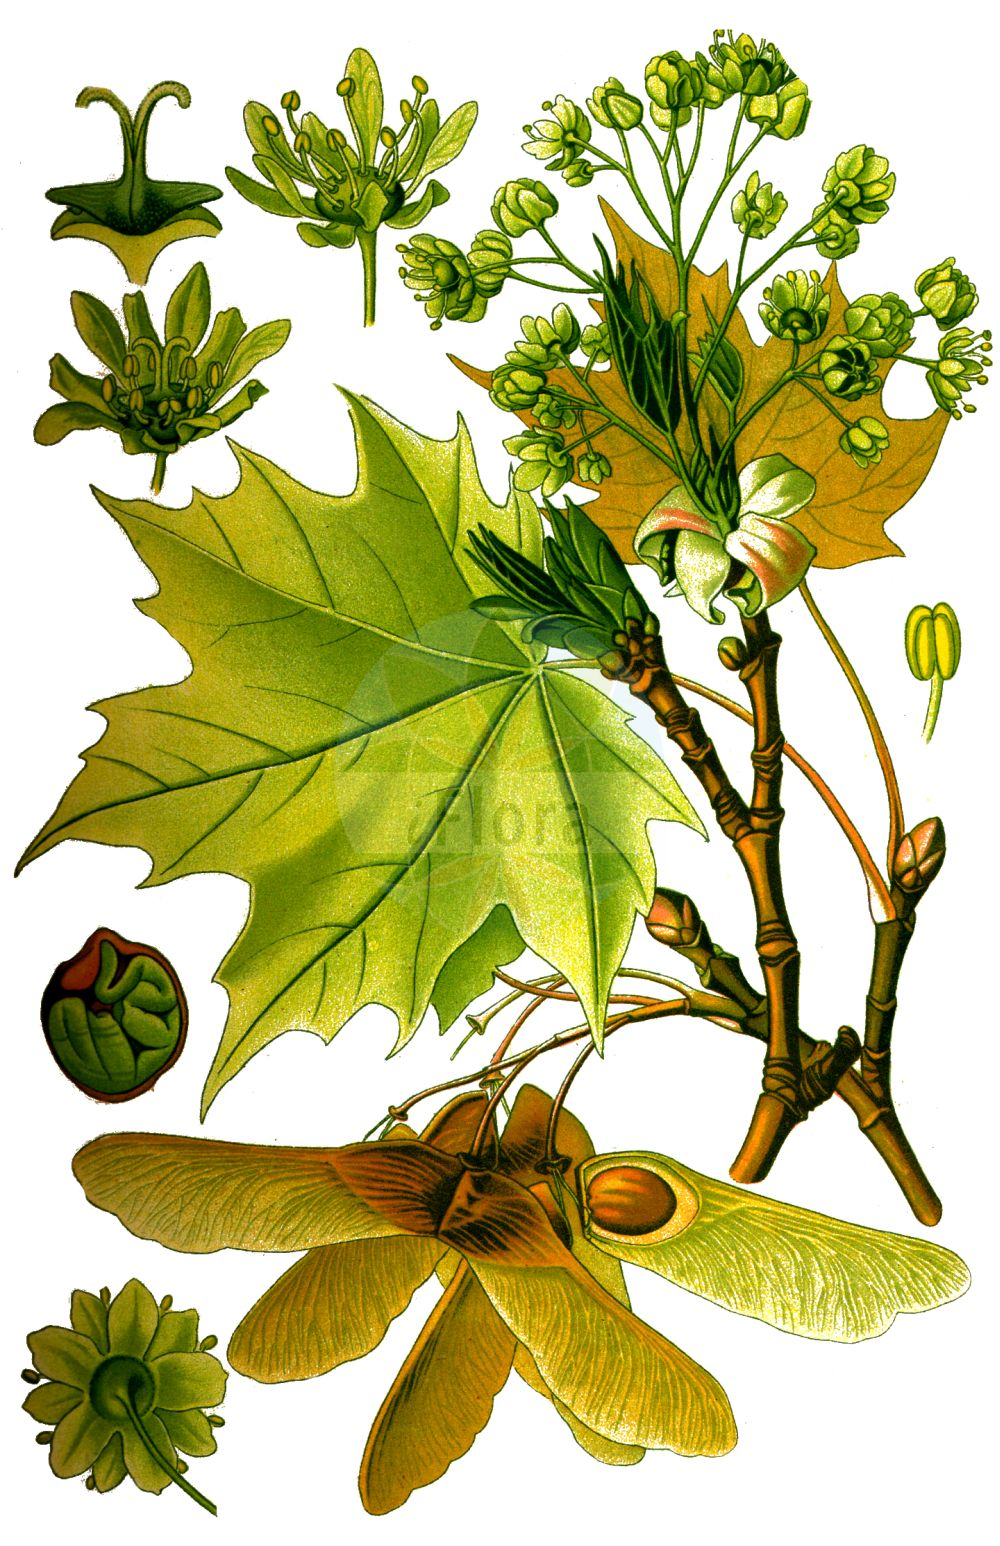 Historische Abbildung von Acer platanoides (Spitz-Ahorn - Norway Maple). Das Bild zeigt Blatt, Bluete, Frucht und Same. ---- Historical Drawing of Acer platanoides (Spitz-Ahorn - Norway Maple).The image is showing leaf, flower, fruit and seed.(Acer platanoides,Spitz-Ahorn,Norway Maple,Acer platanoides,Spitz-Ahorn,Europaeischer Spitz-Ahorn,Norway Maple,Plane Maple,Acer,Ahorn,Maple,Sapindaceae,Seifenbaumgewaechse,Soapberry family,Blatt,Bluete,Frucht,Same,leaf,flower,fruit,seed,Thomé (1885))